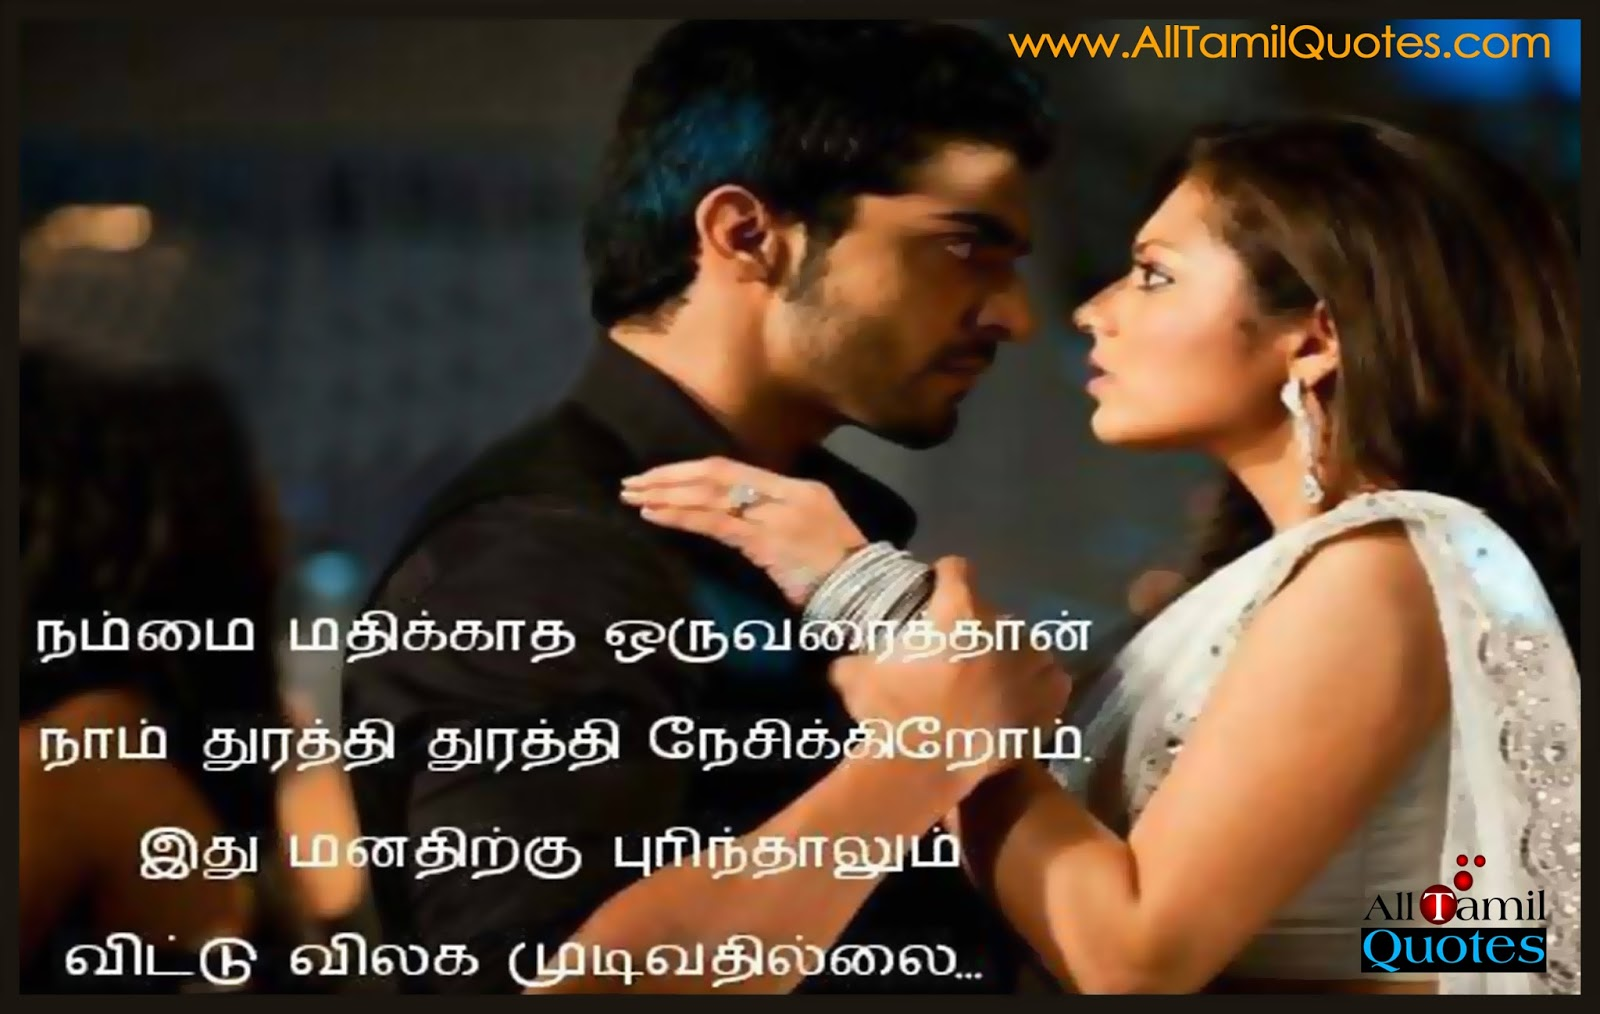 Best Quotes About Love In Tamil